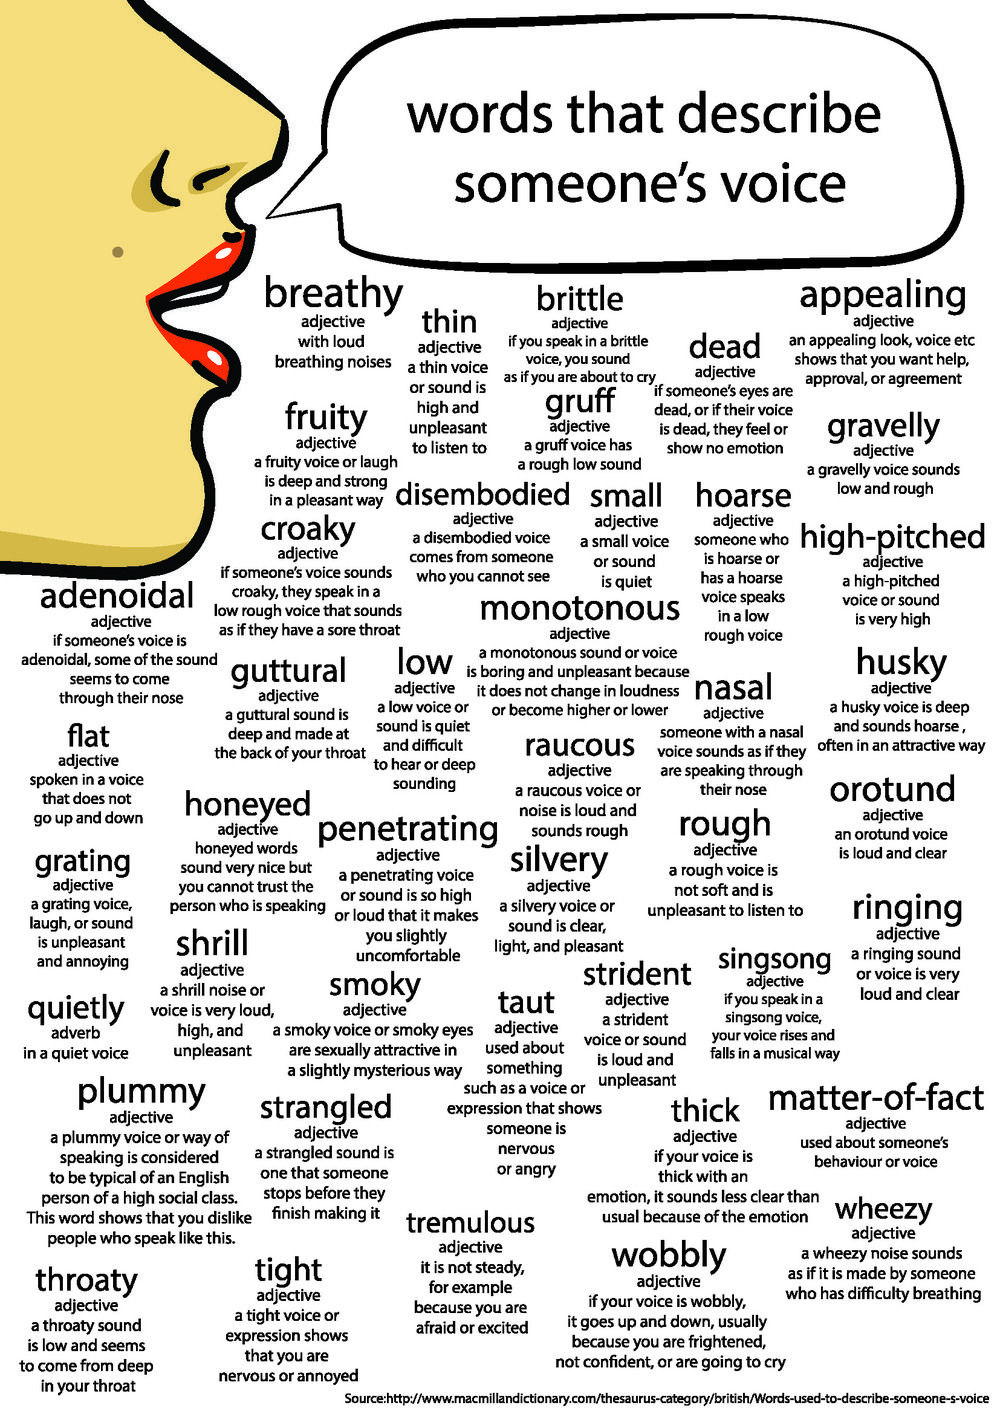 Words That Describe Someones Voiceinfographic Painting With